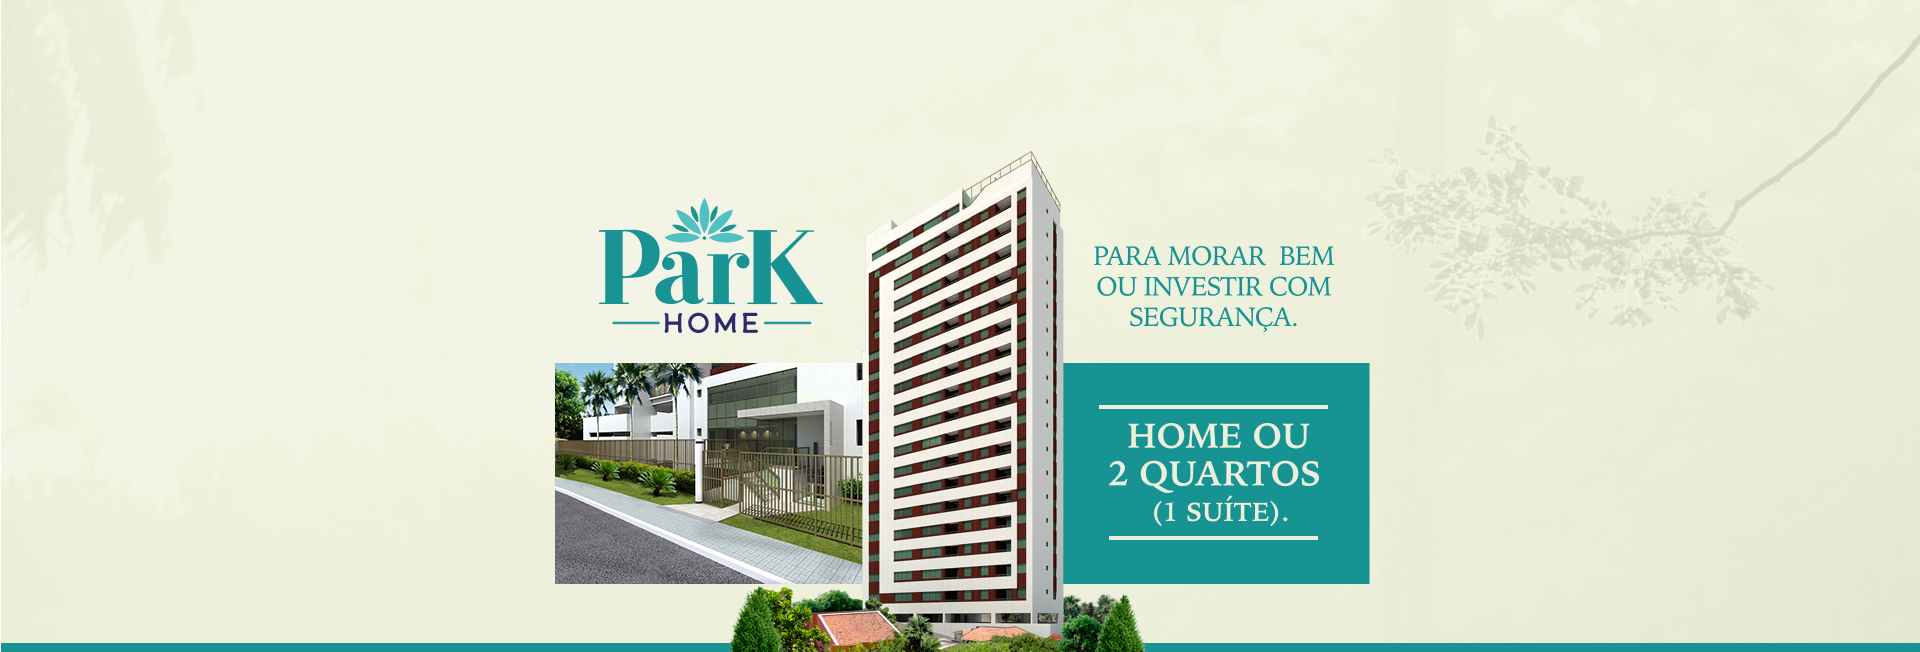 banner-parkhome